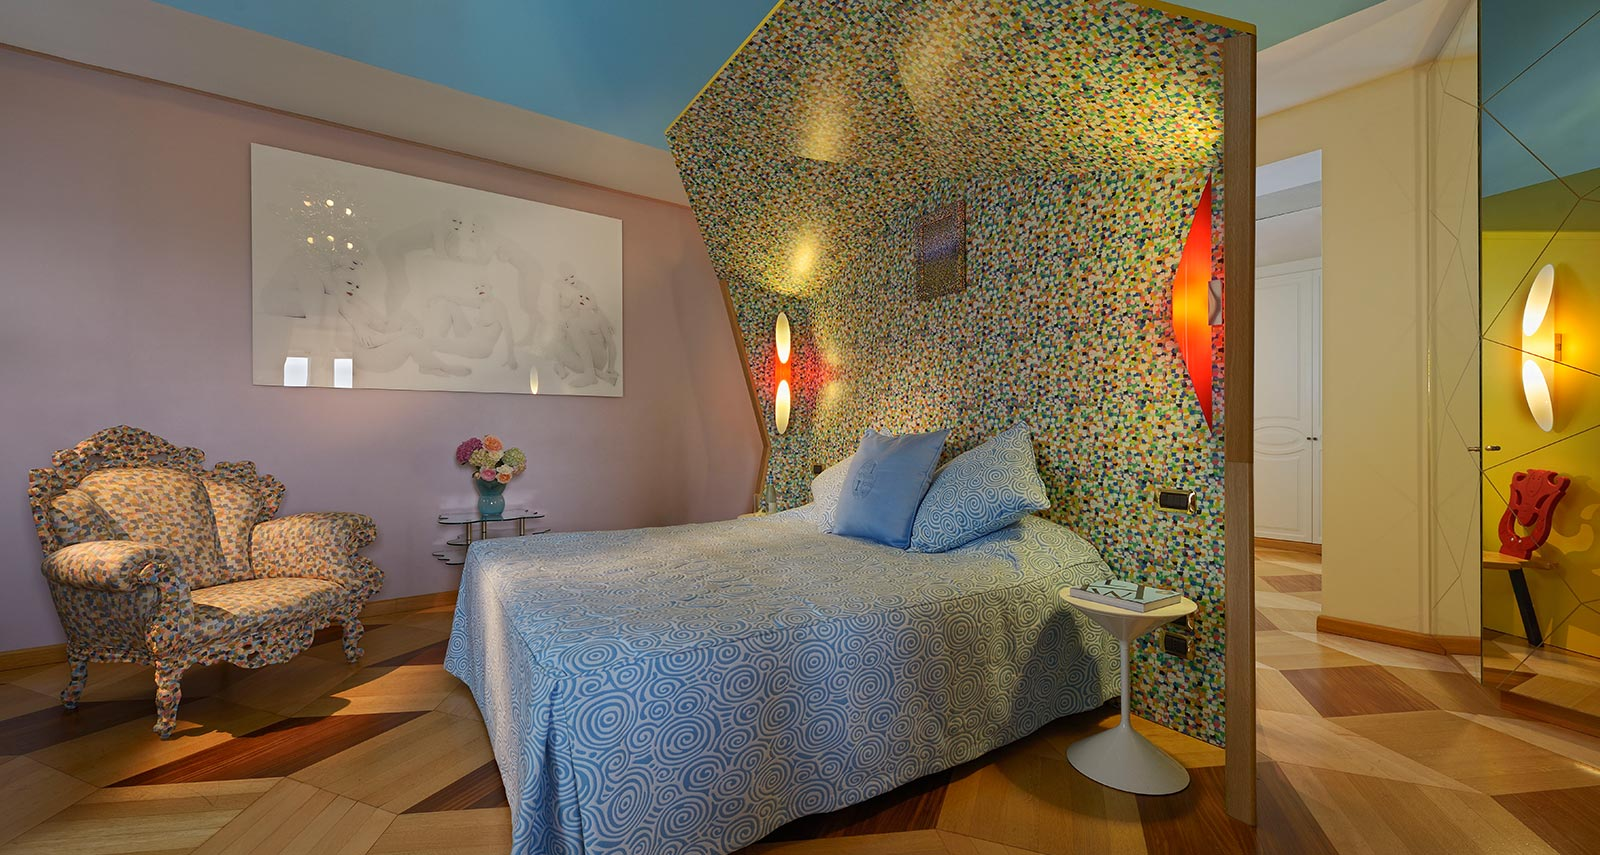 Luxury Rooms and Suites Boutique hotel verona